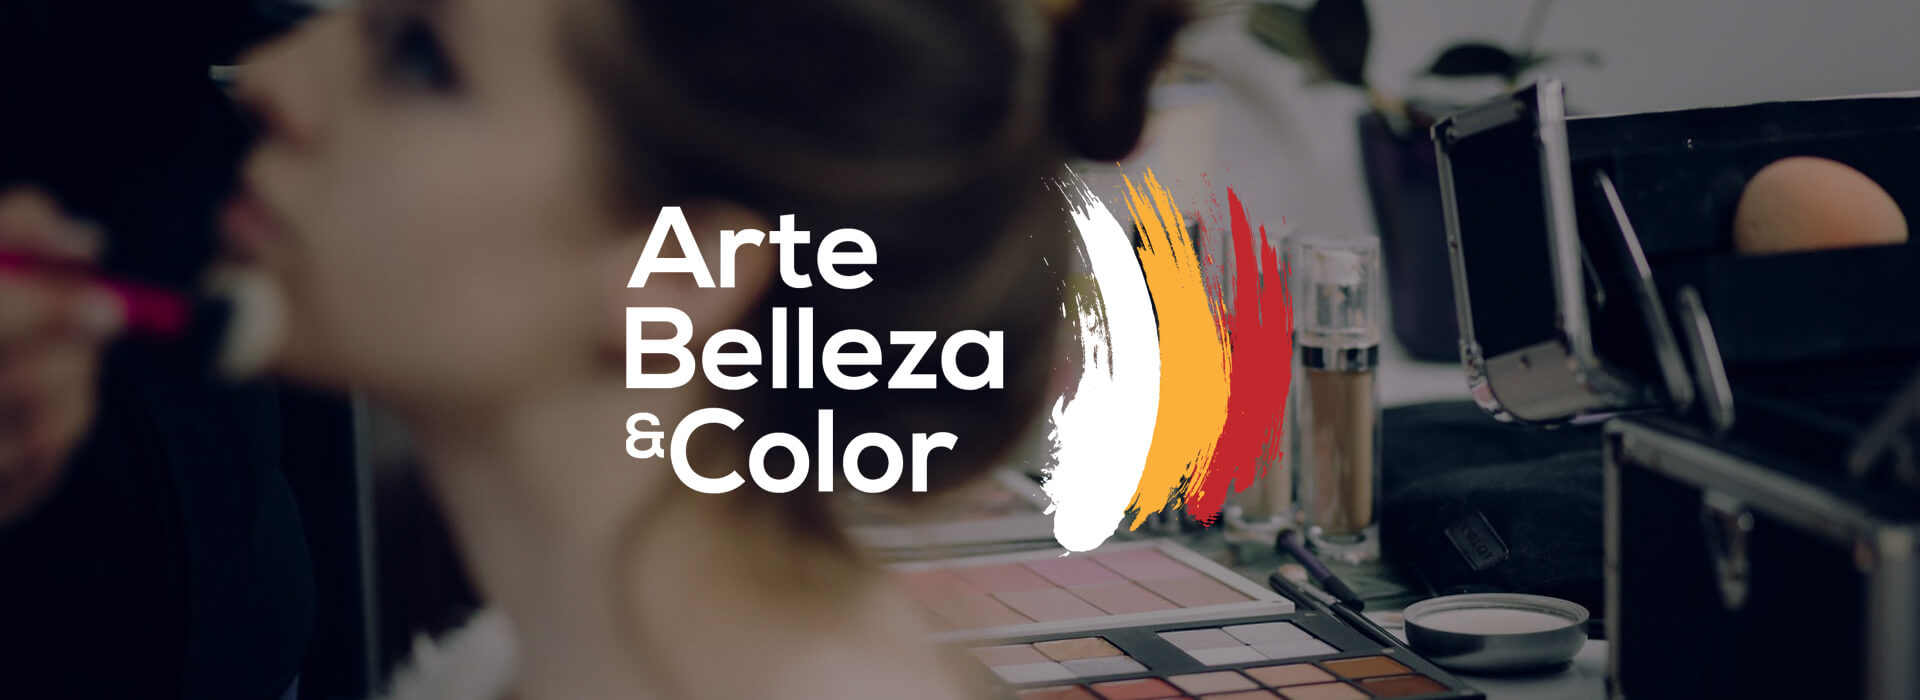 Arte Belleza & Color project